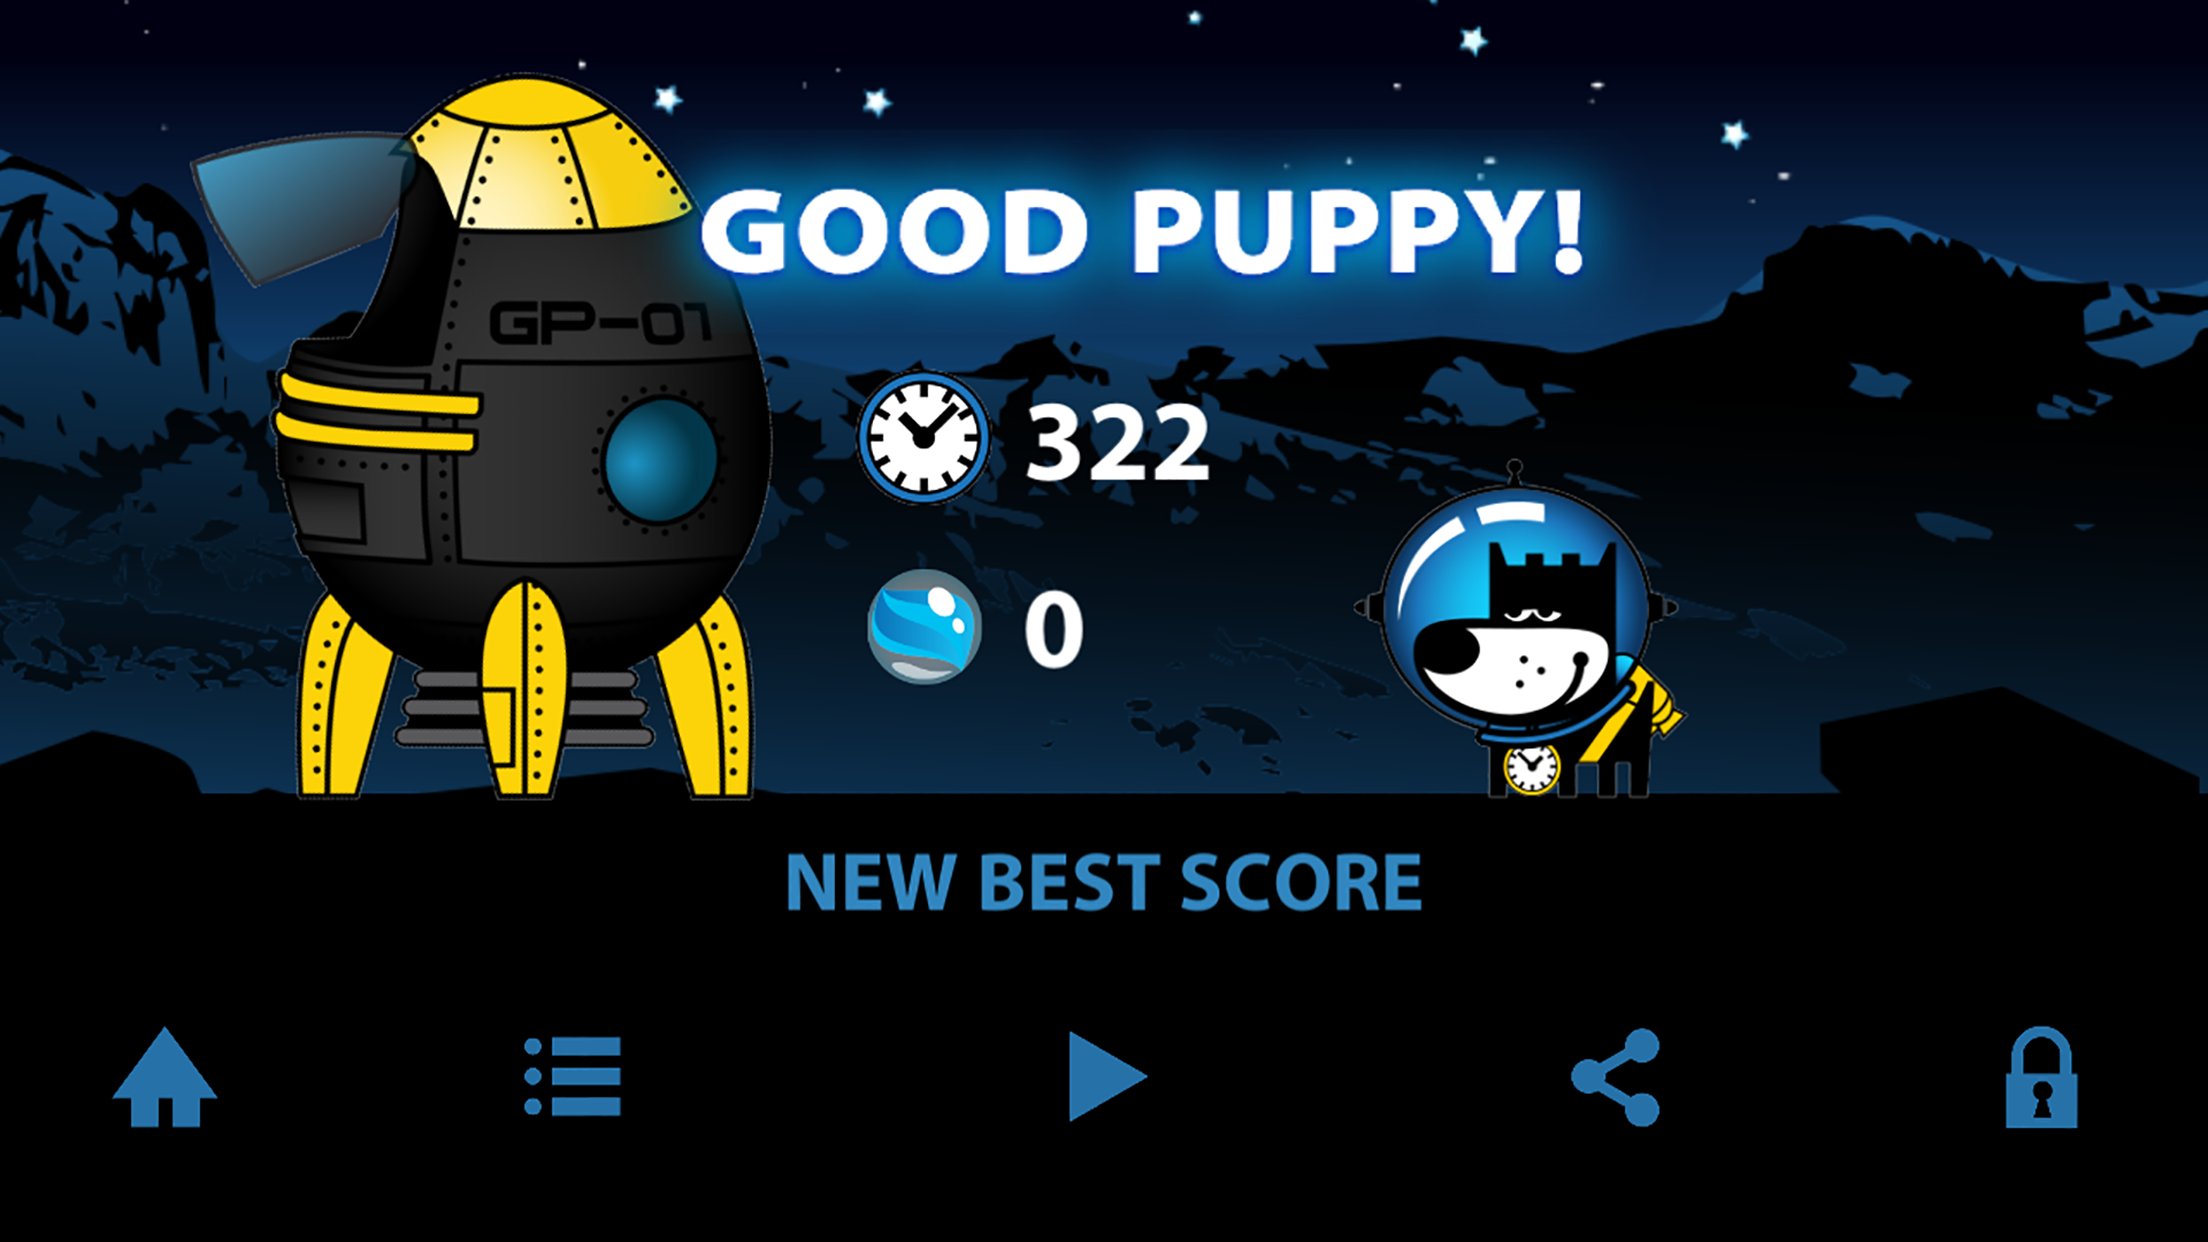 GOOD-PUPPY-Space-Walk-Infinite-Runner-Free-Download-11.png